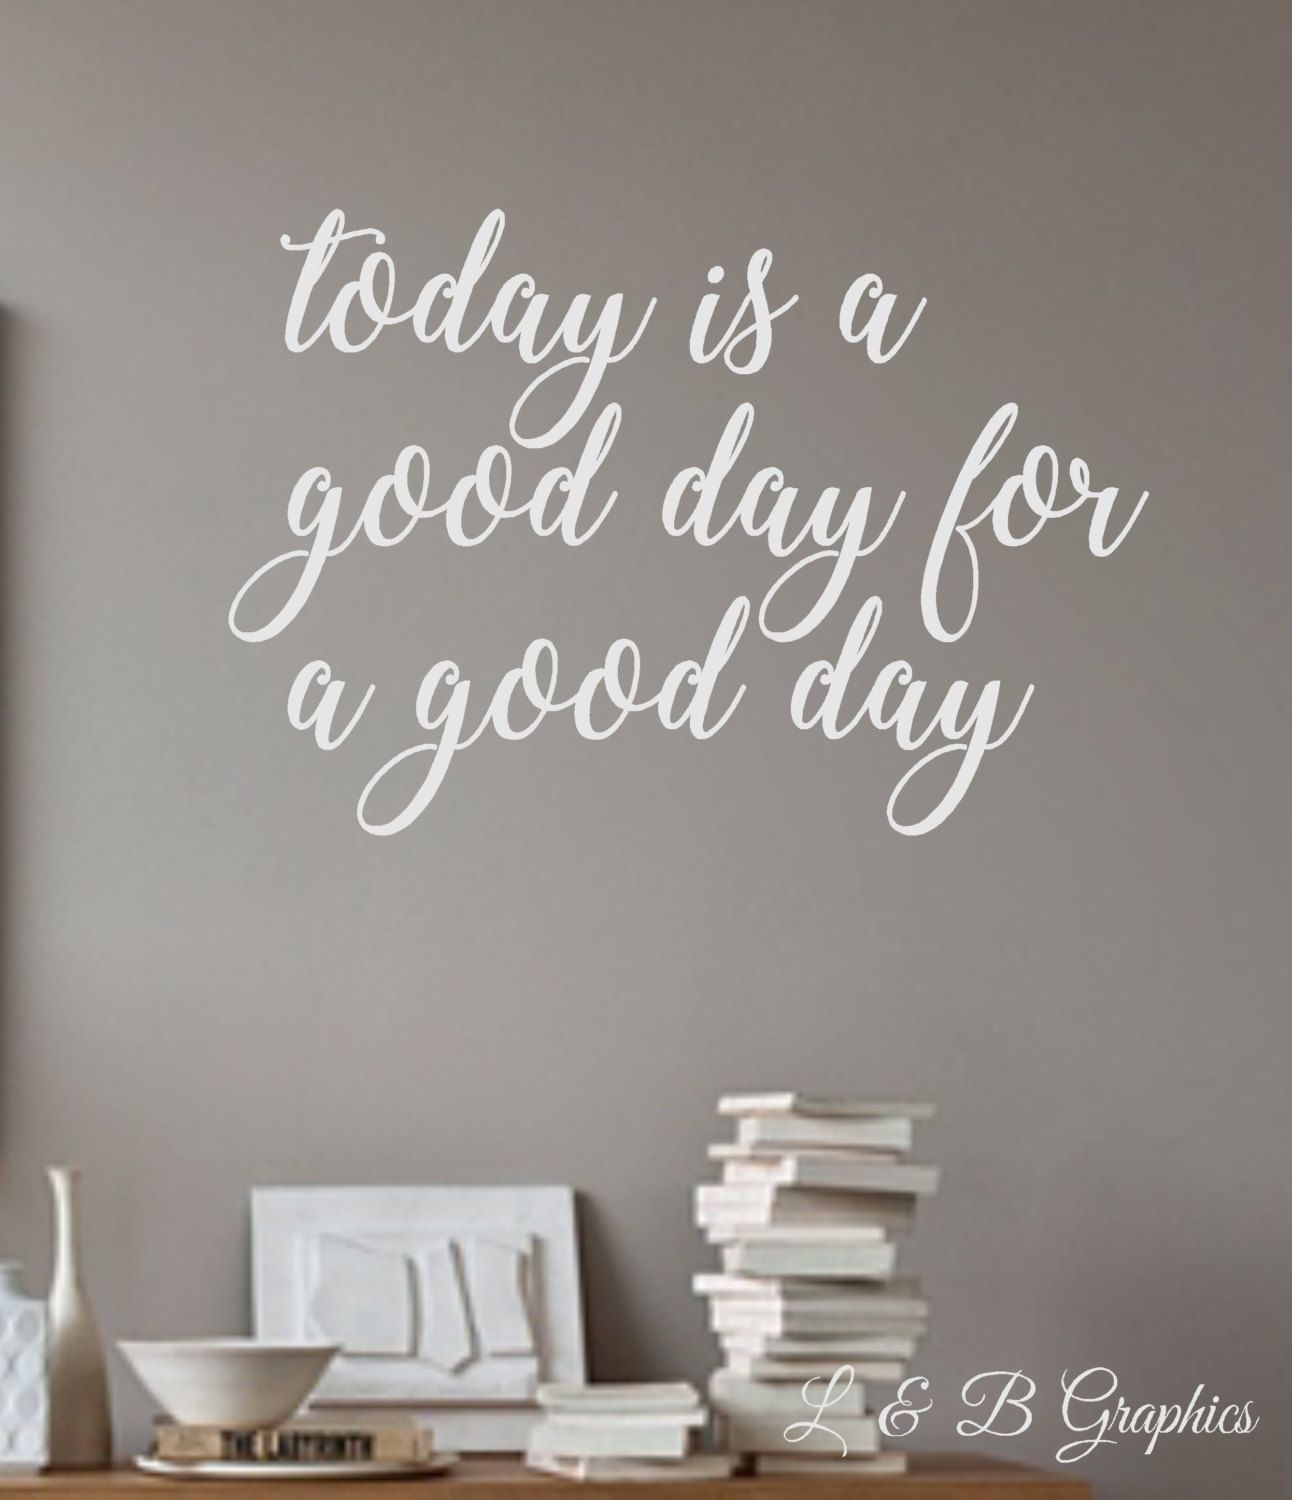 Vinyl Wall Decal Today Is A Good Day For Quotes Decals Words The French Country Decor Home By Landbgraphics On Etsy